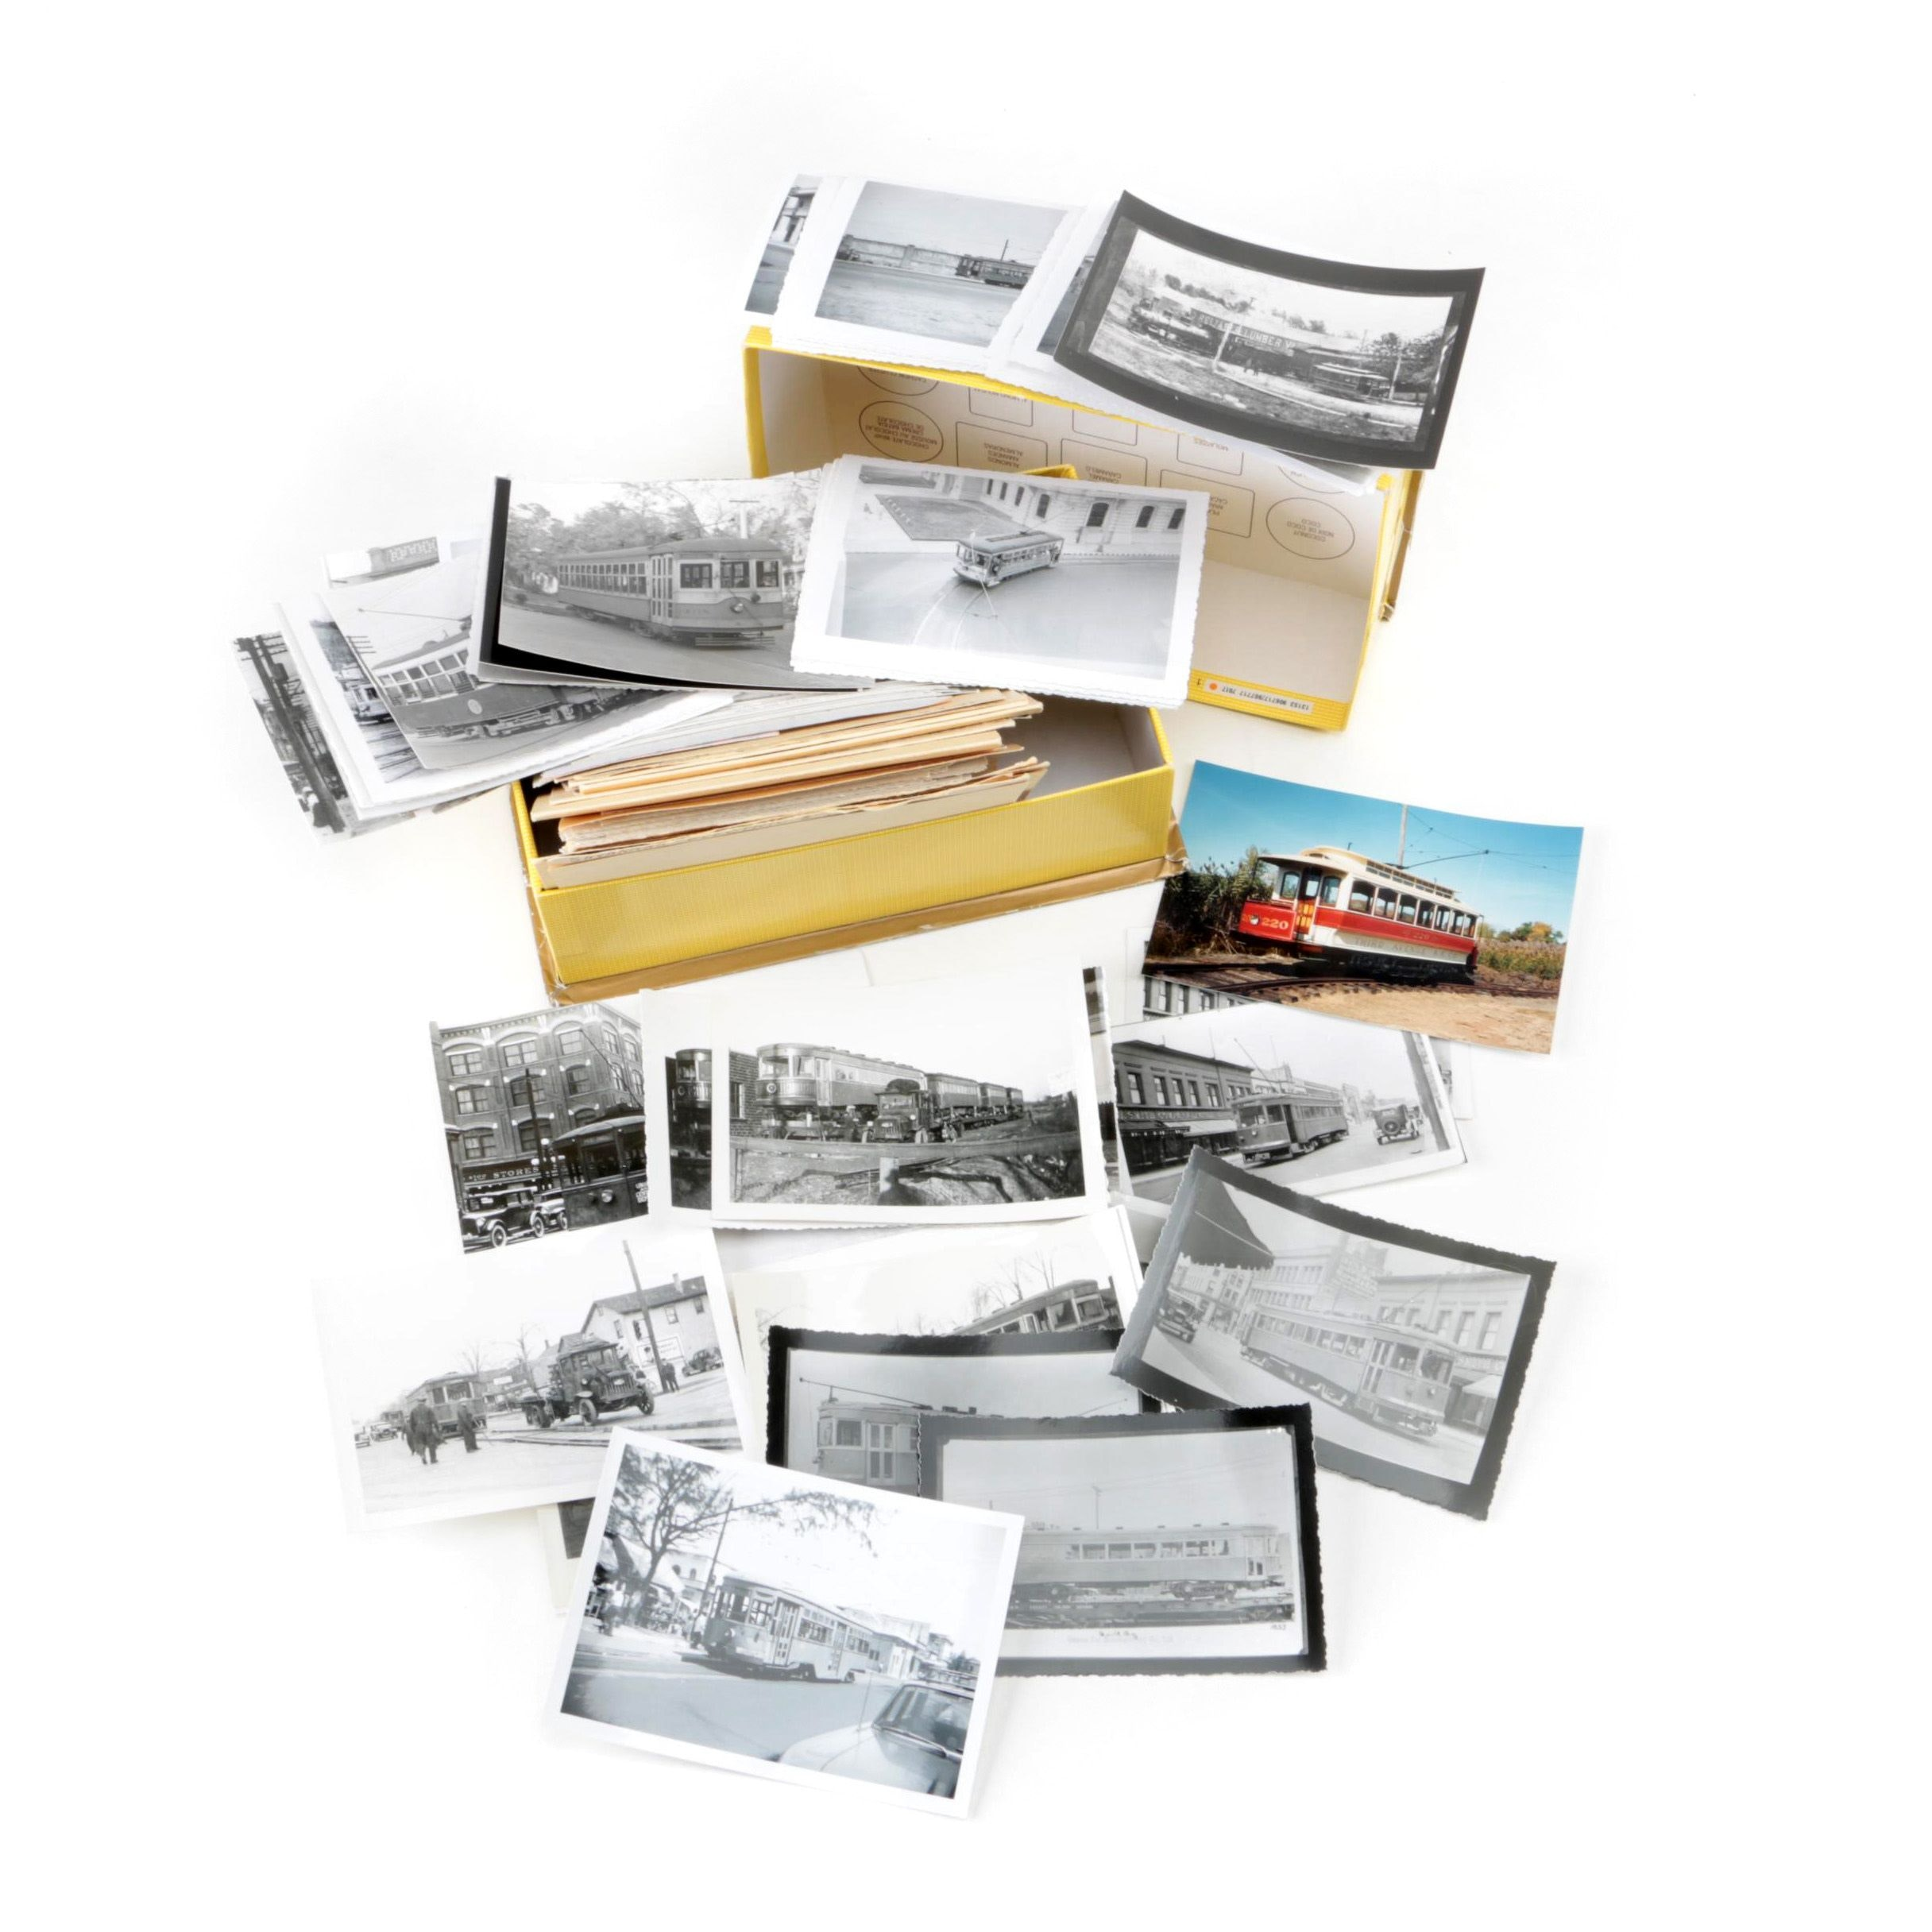 Photographs of Street Cars Organized In Box With Filing Cards